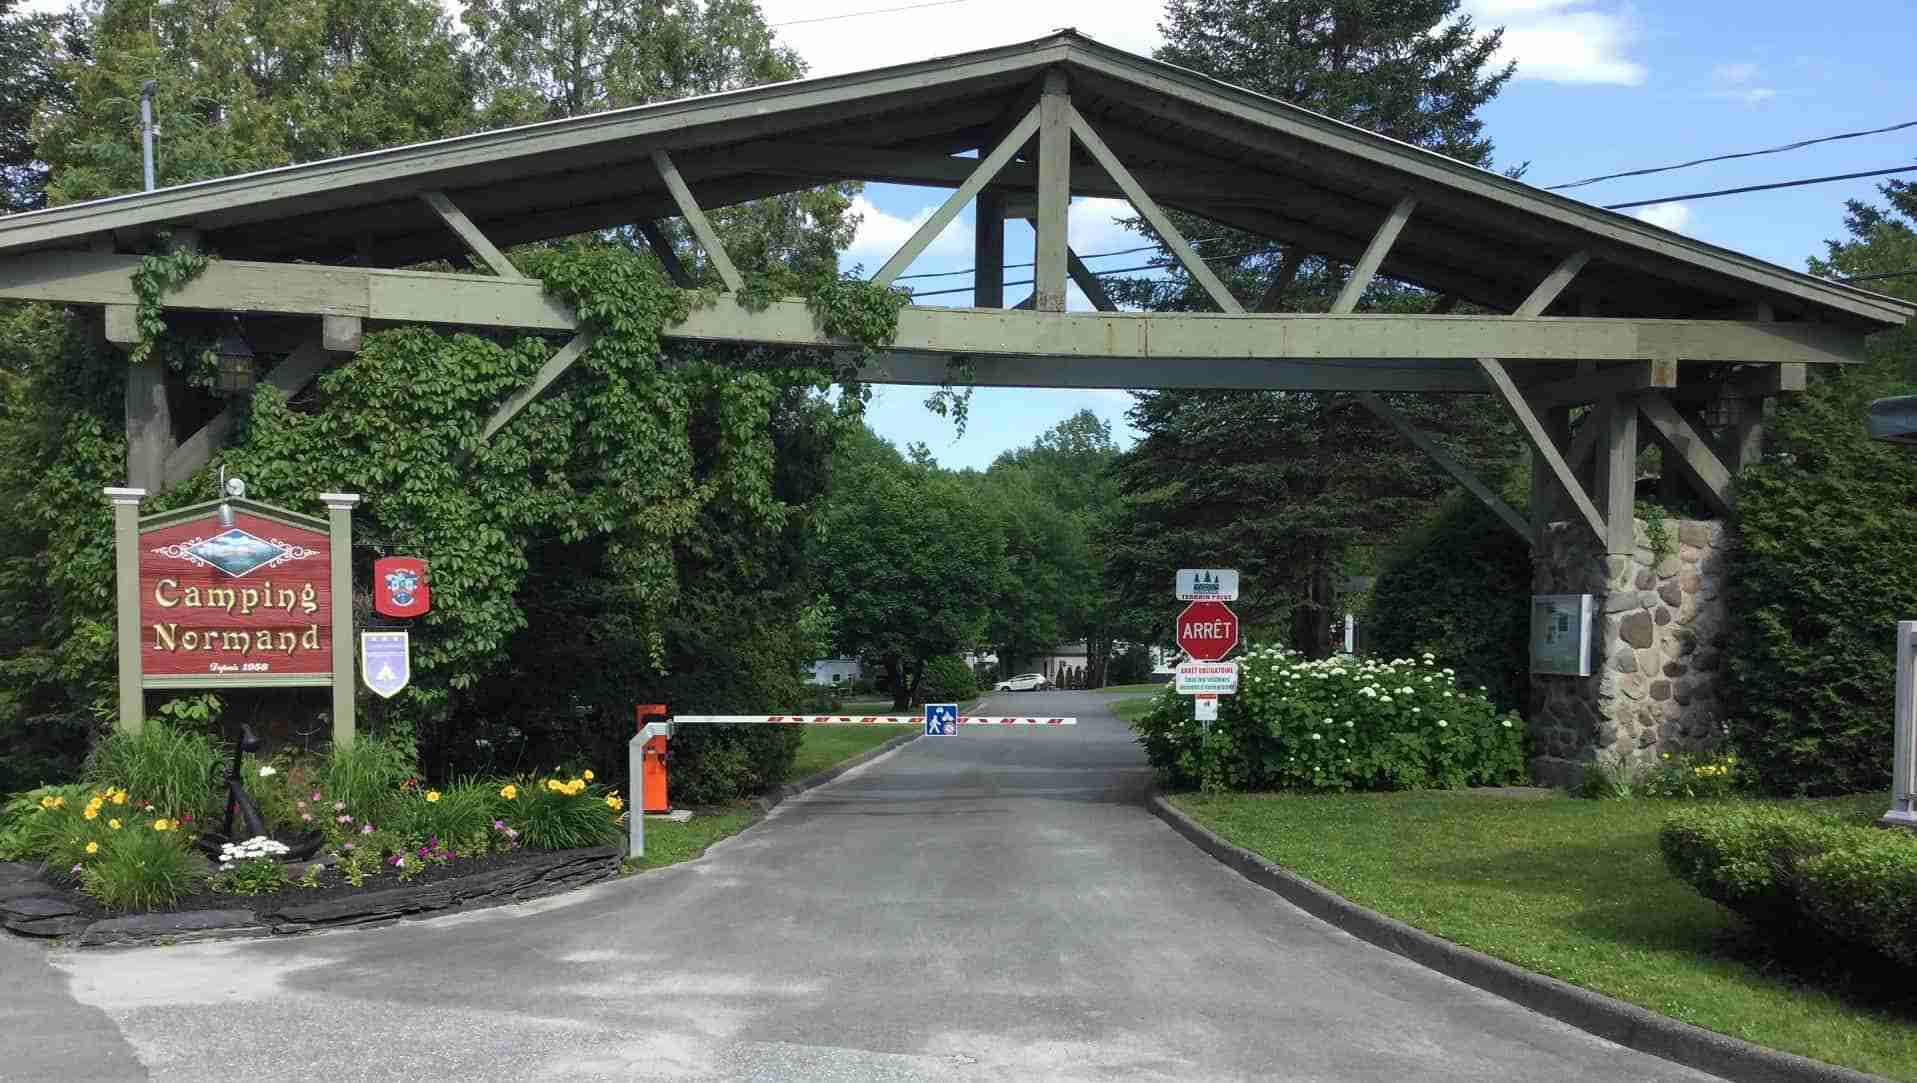 Camping Normand - Eastman